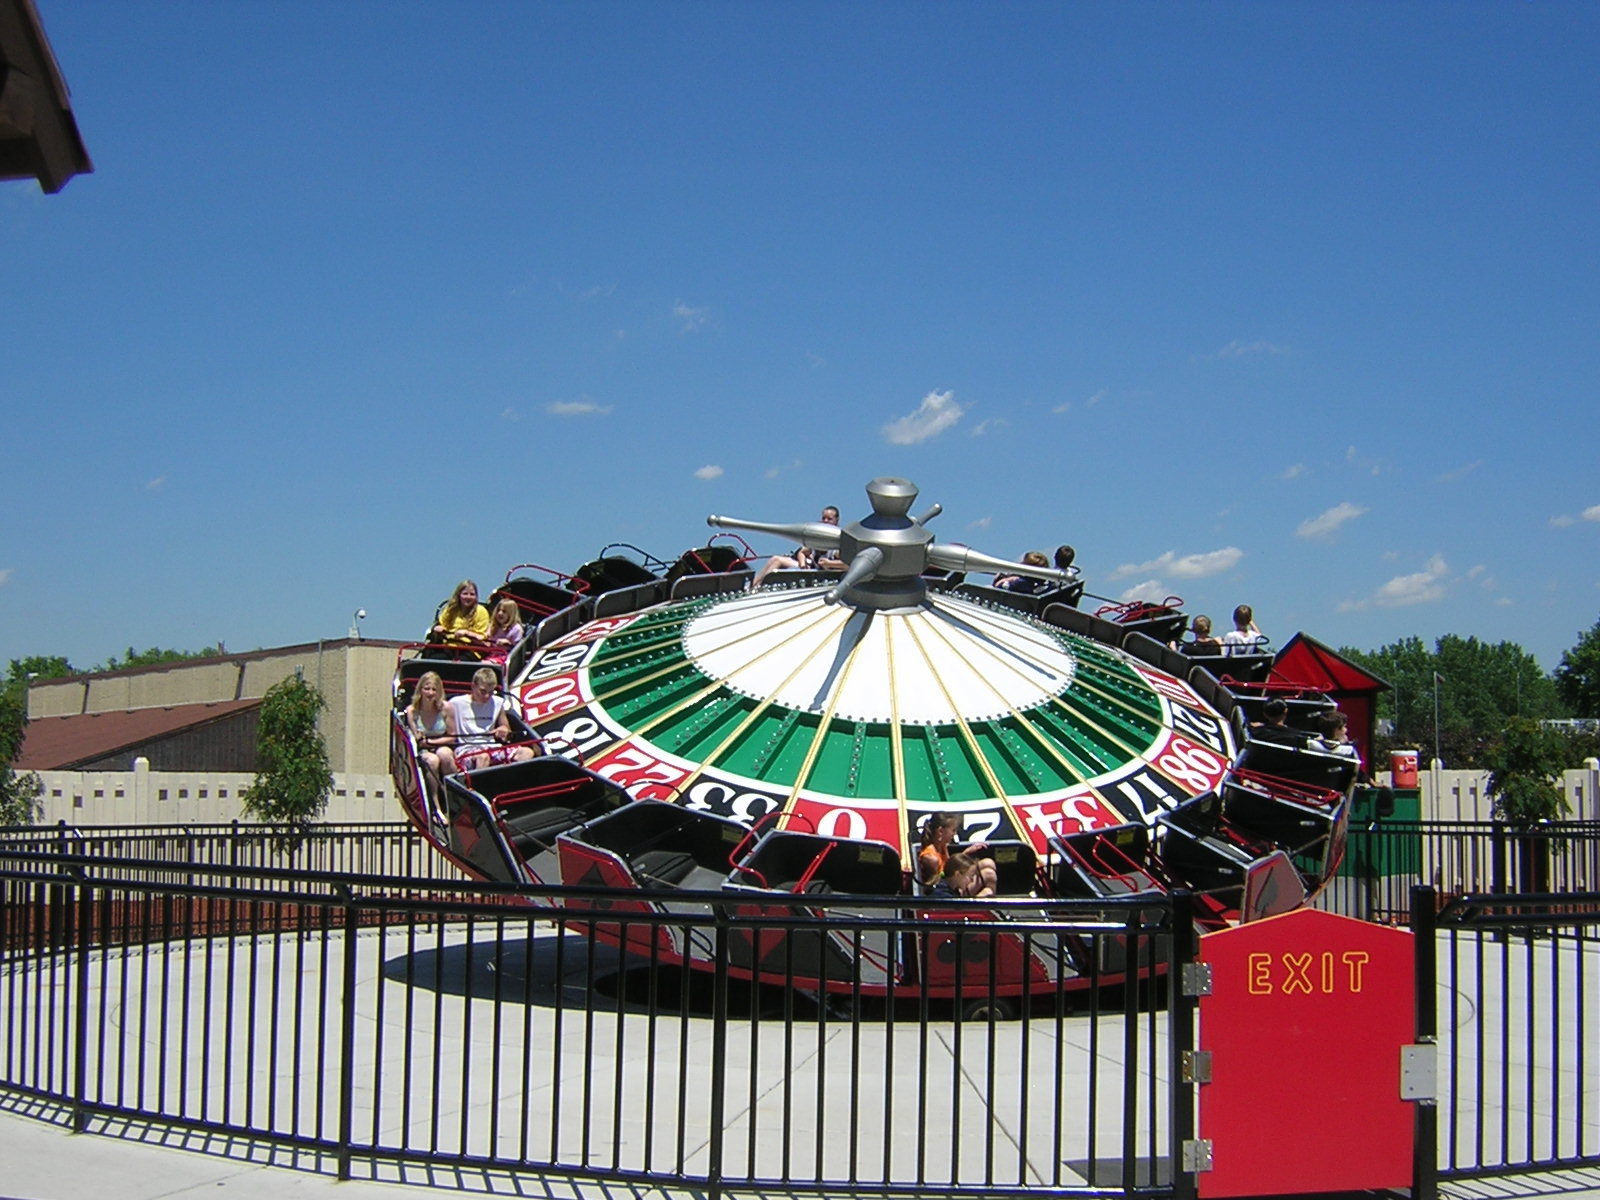 Valleyfair Amusement Park: Upper Midwest's largest ...